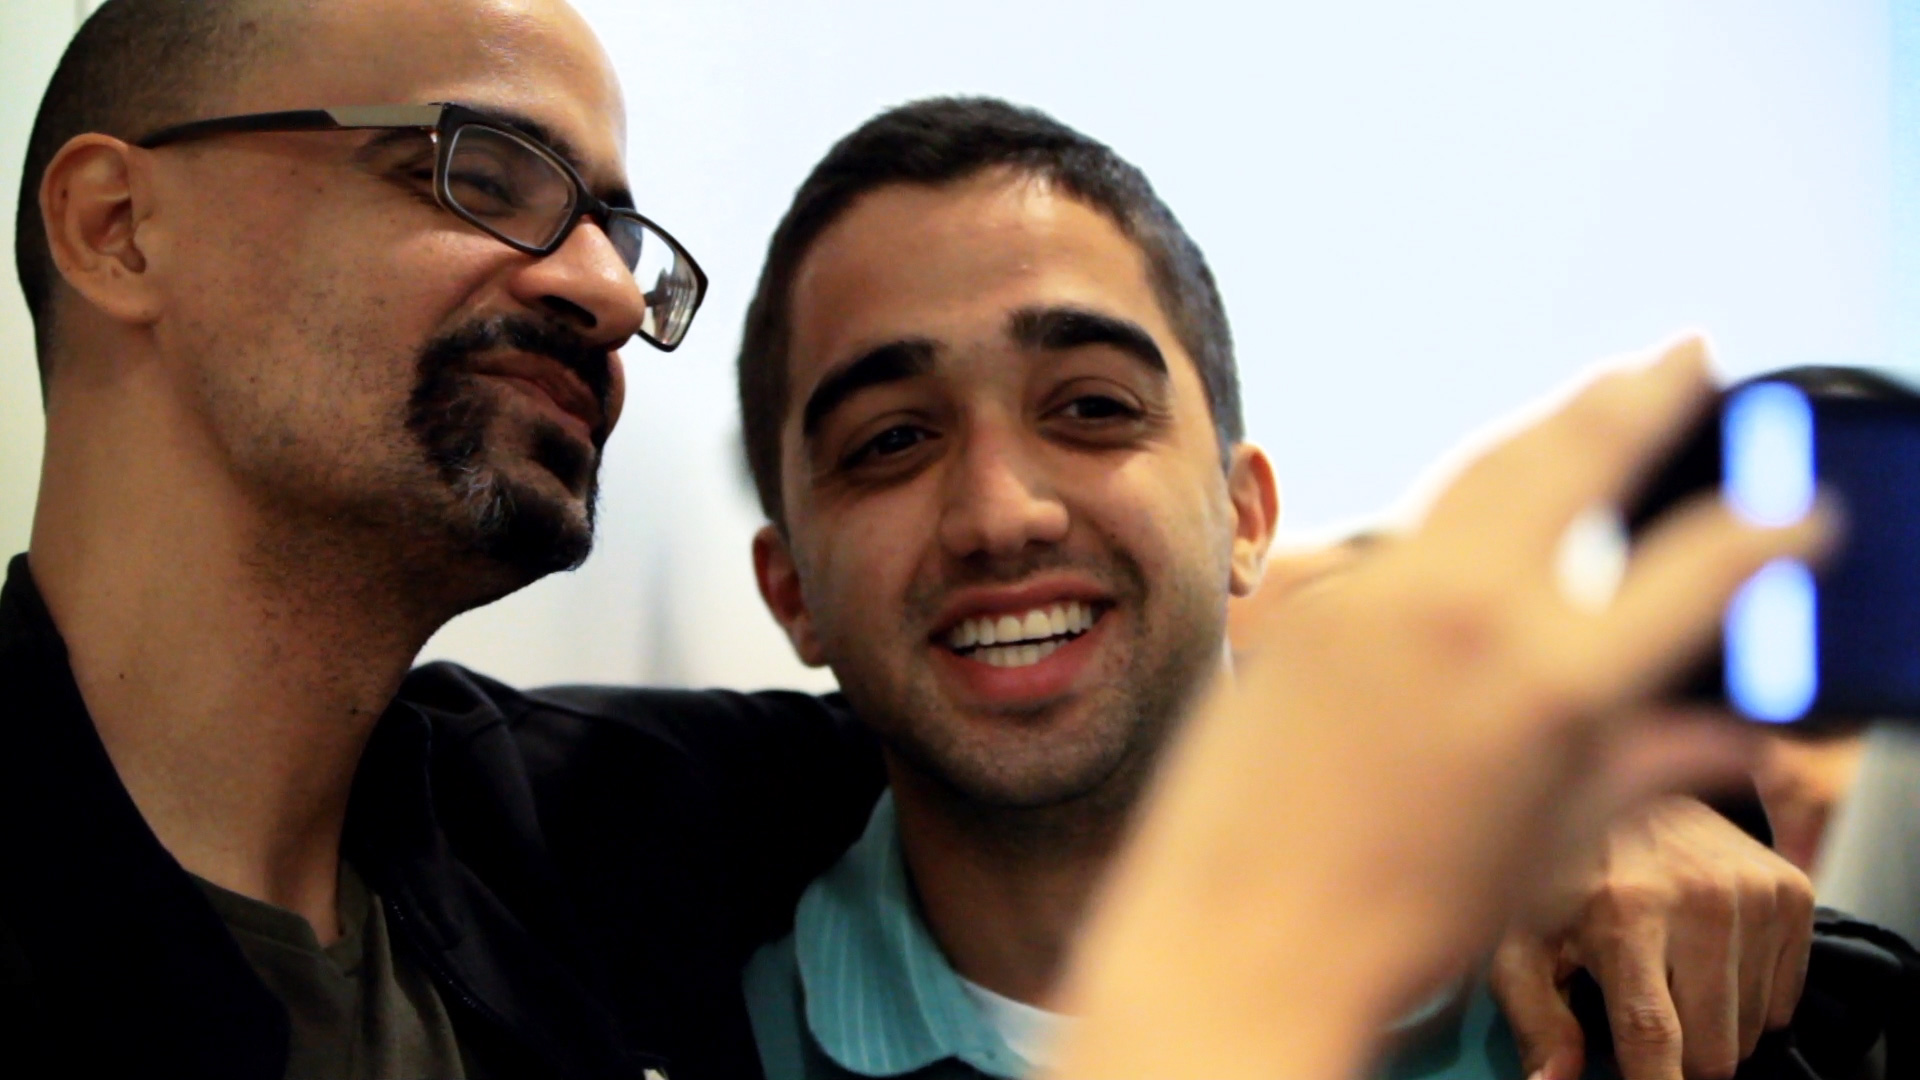 Junot_Diaz_Selfie_with_Fan_AmericanCreed_72dpi.jpg